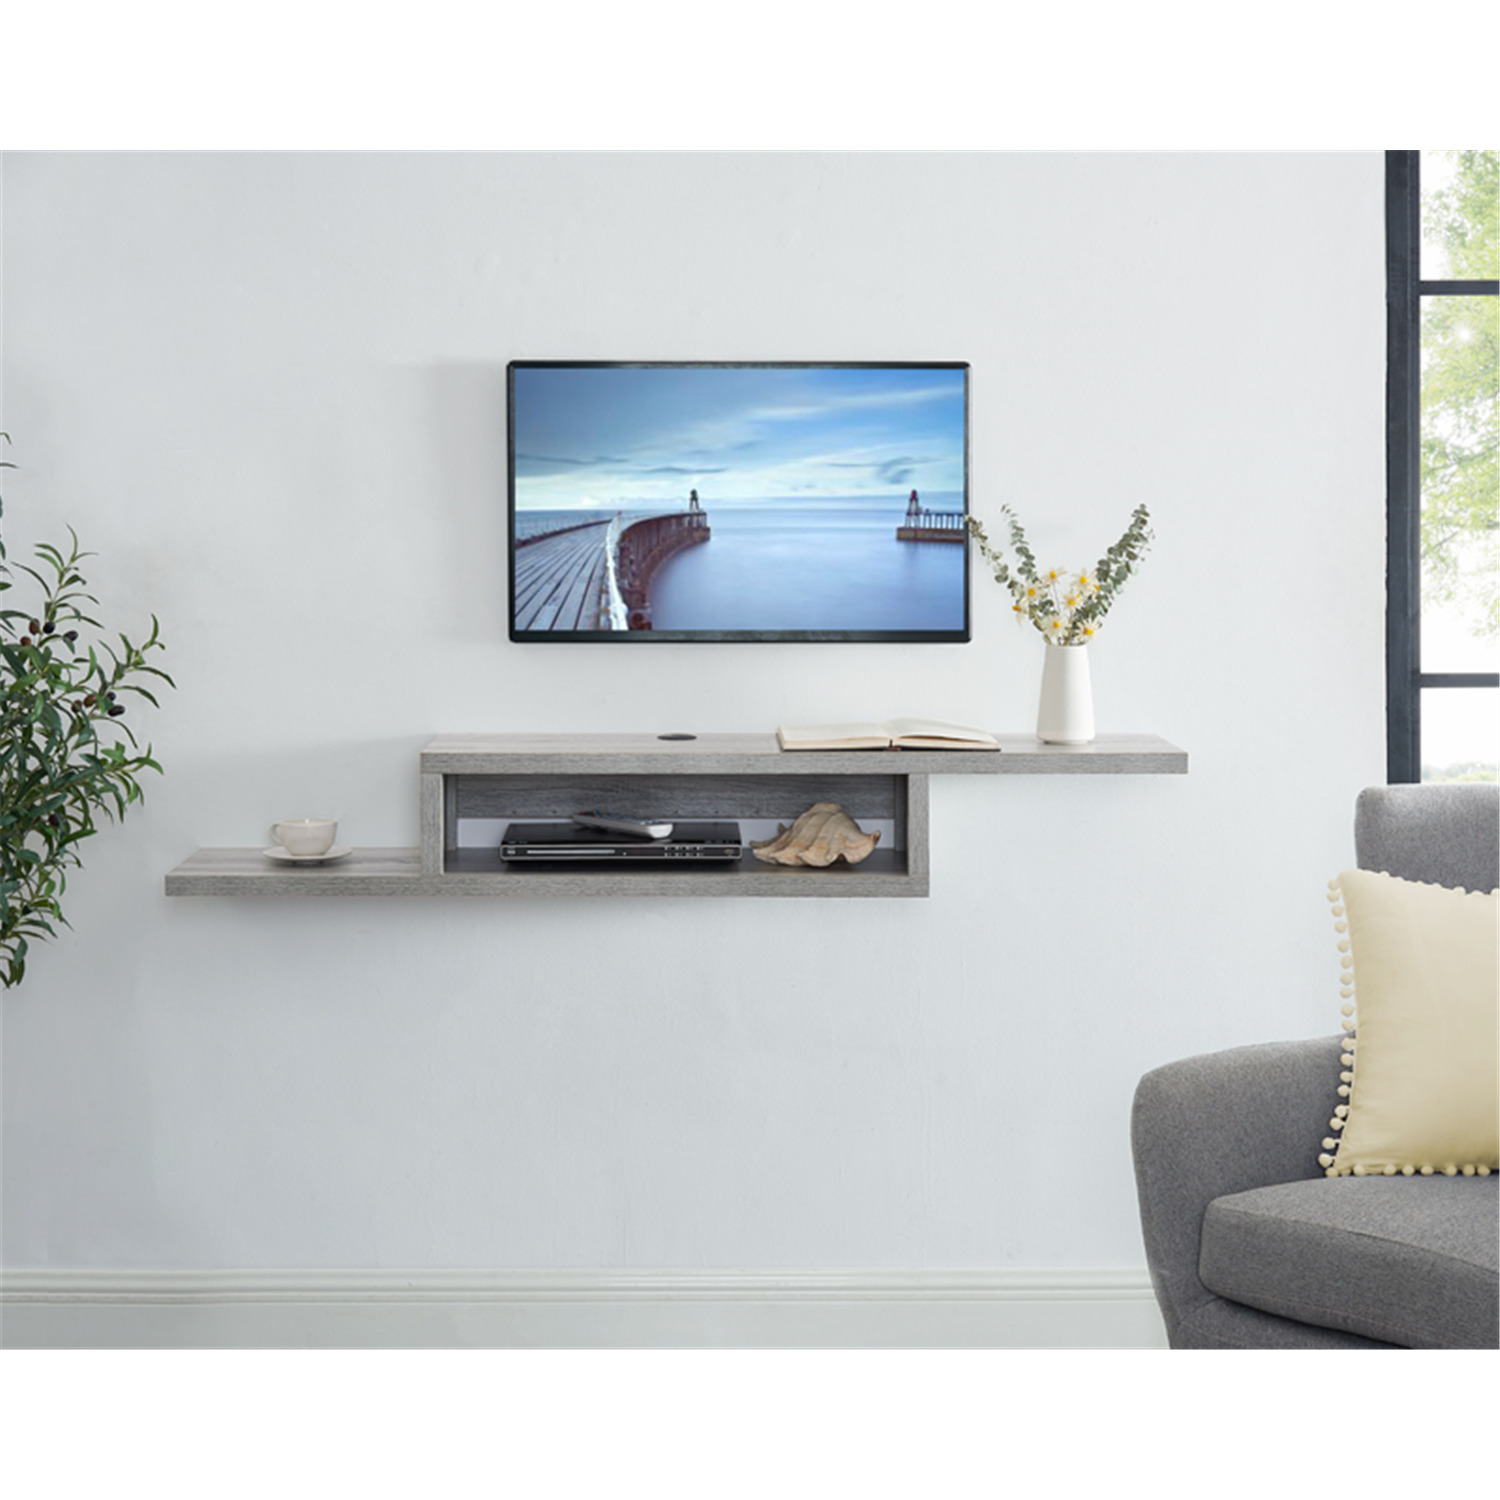 Naomi Home Athena Wall Mounted Floating TV Stand for 65″ TV